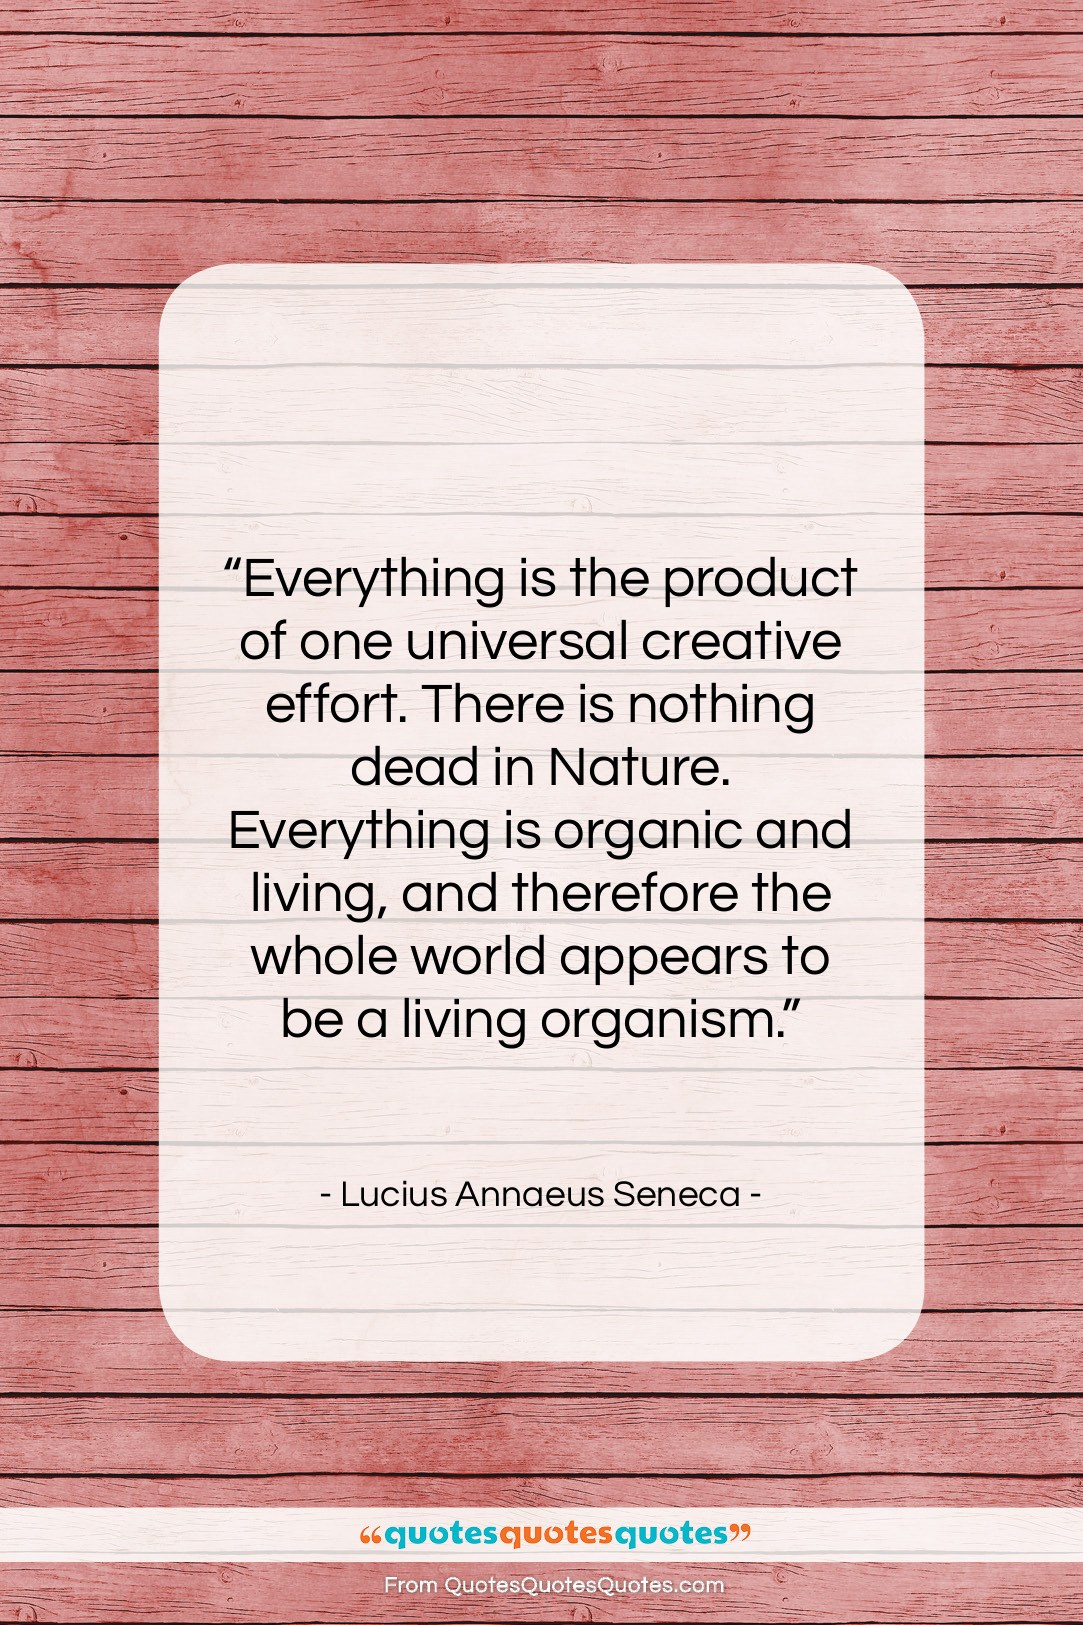 """Lucius Annaeus Seneca quote: """"Everything is the product of one universal…""""- at QuotesQuotesQuotes.com"""